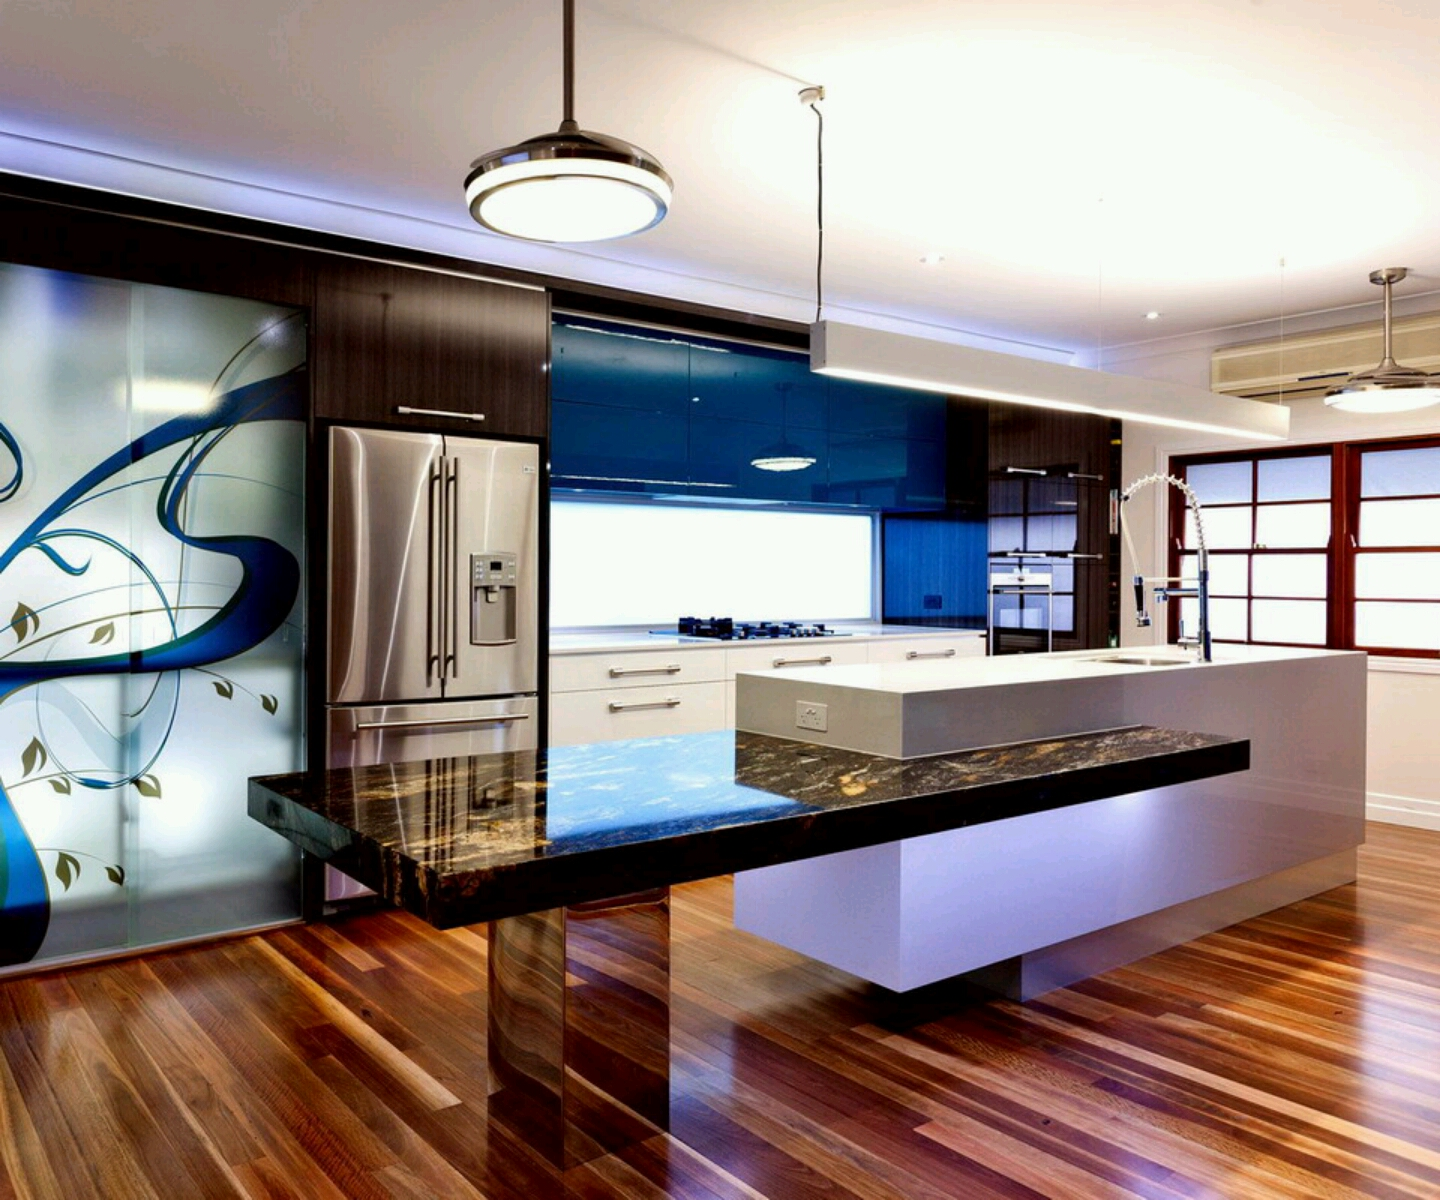 ultra modern kitchen designs ideas new home designs ForKitchen Ideas Design